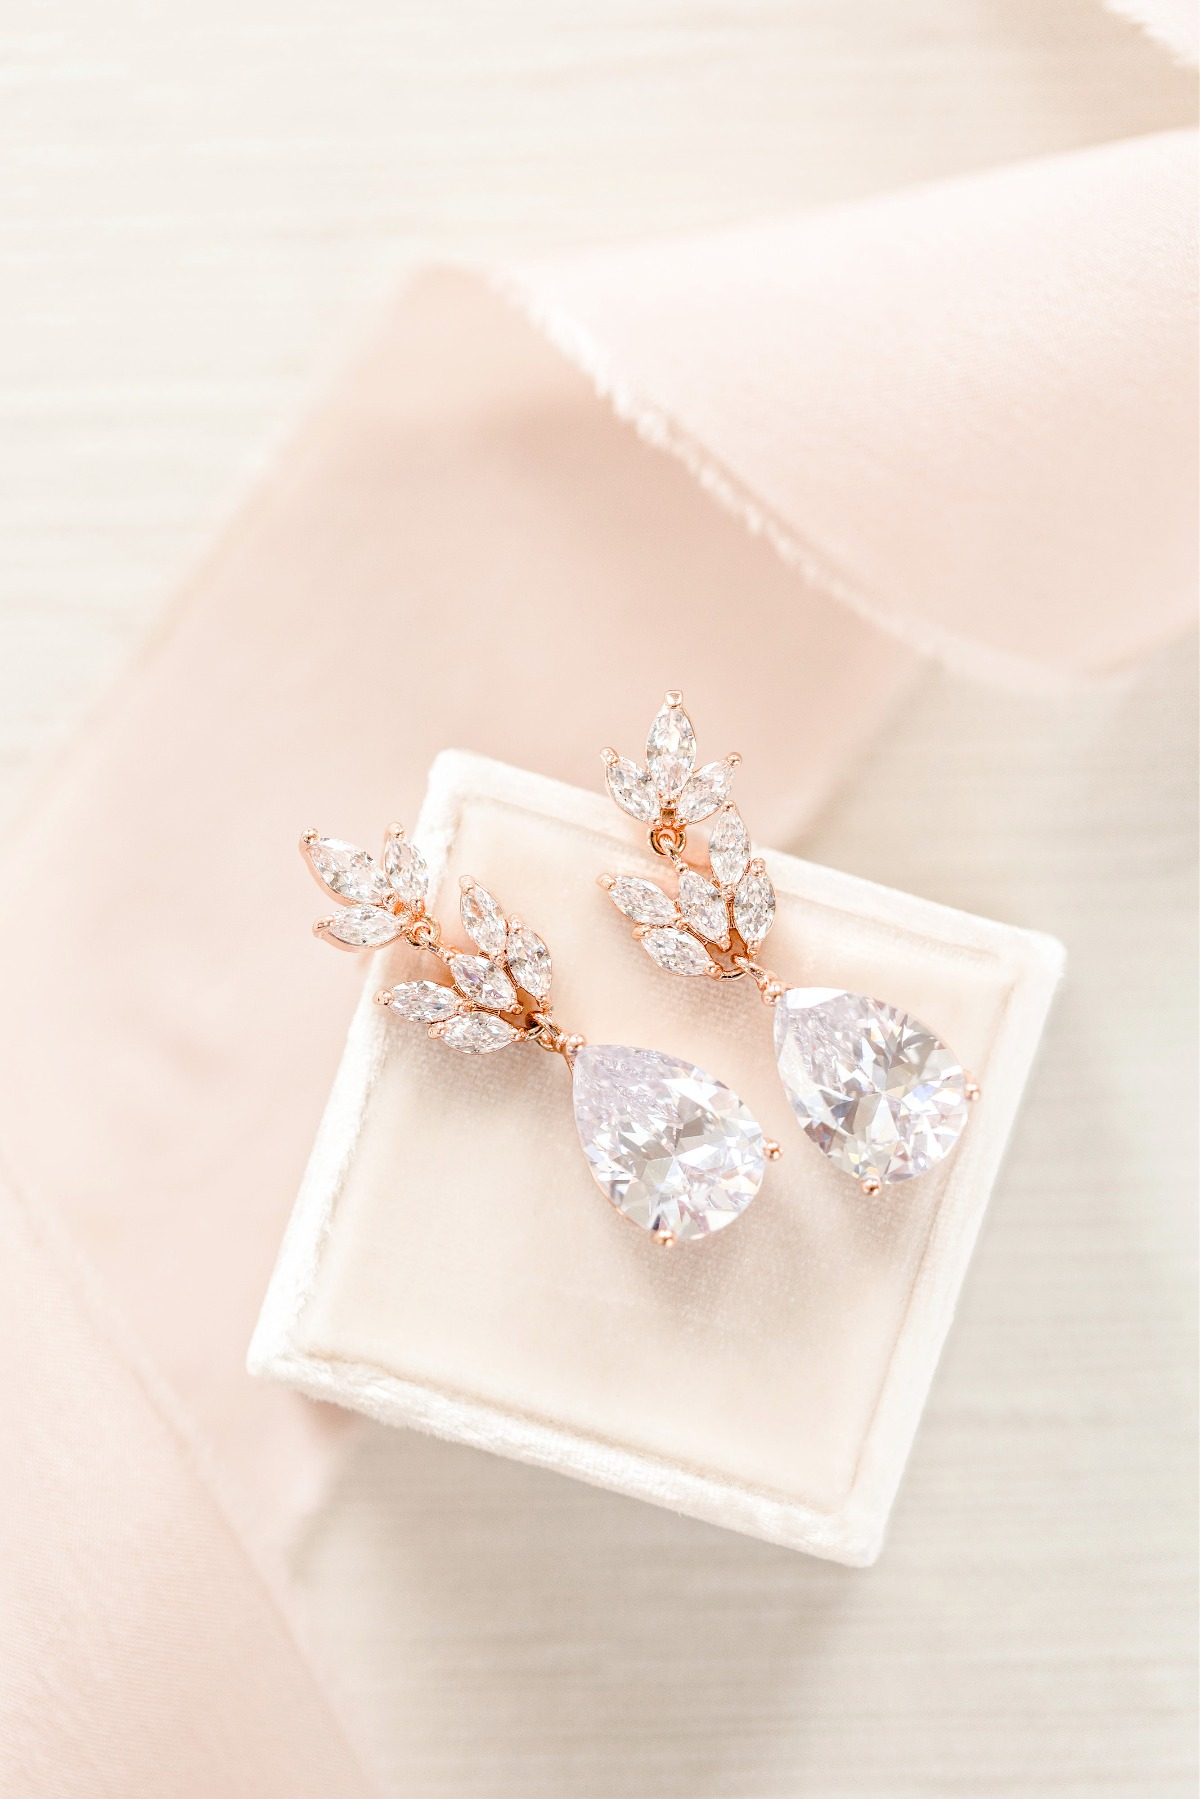 How to Choose Bridesmaid Jewelry for Every Dress Style